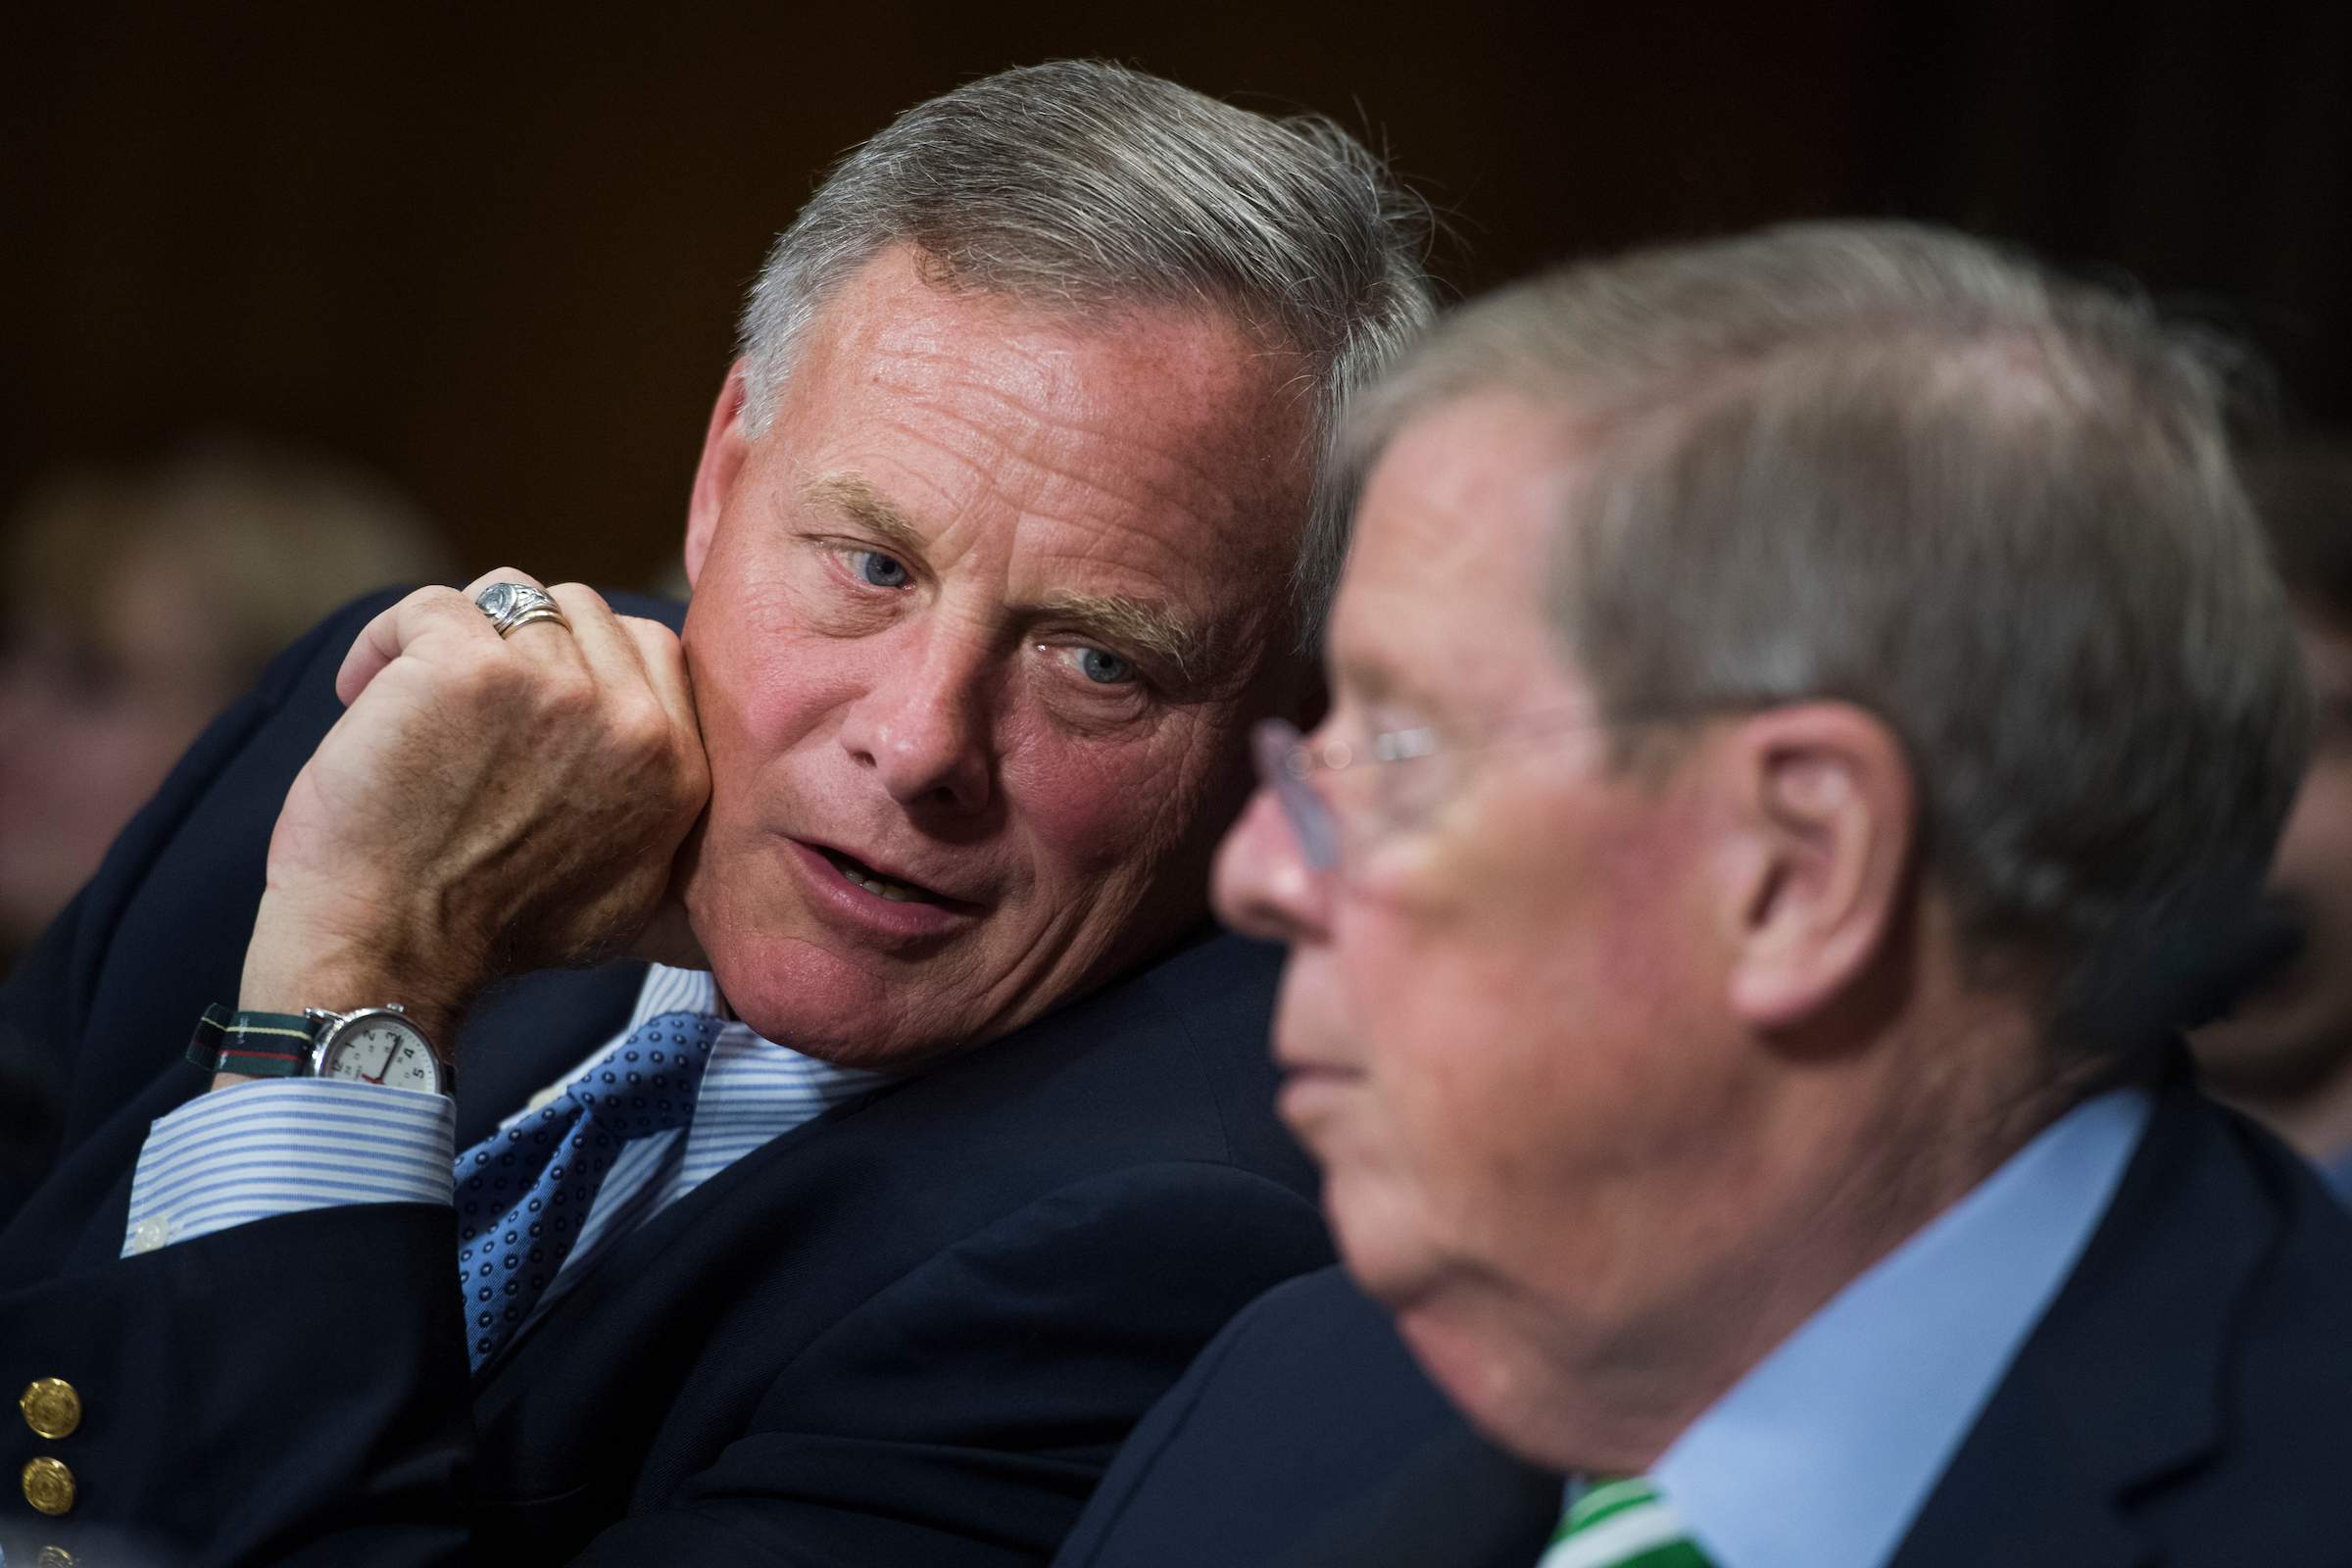 UNITED STATES - SEPTEMBER 20: Sens. Richard Burr, R-N.C., left, and Johnny Isakson, R-Ga., prepare to introduce judicial nominees during a Senate Judiciary Committee hearing in Dirksen on September 20, 2017. (Photo By Tom Williams/CQ Roll Call)